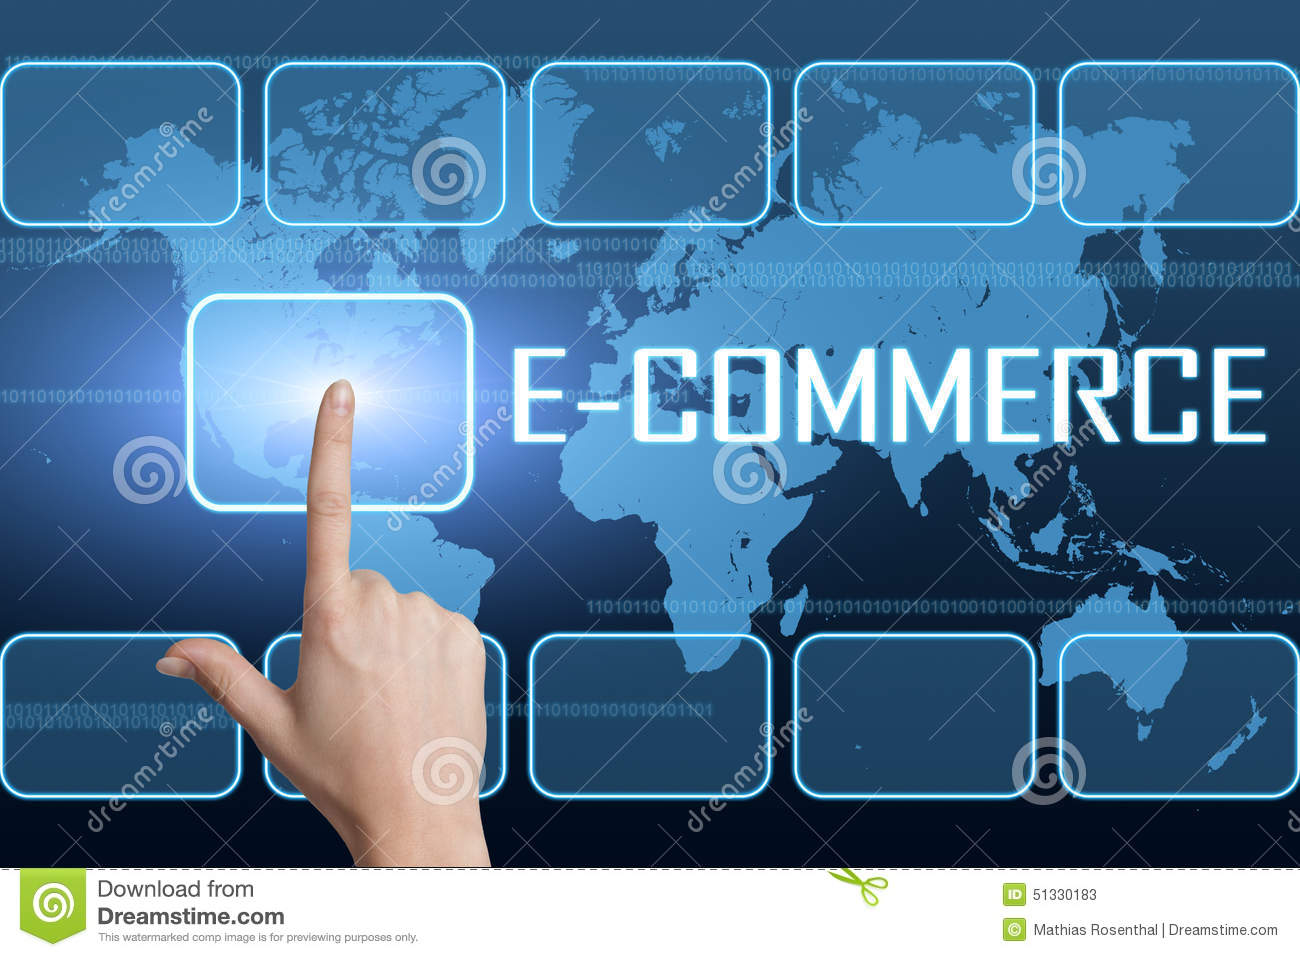 Ecommerce hd background images - Commerce